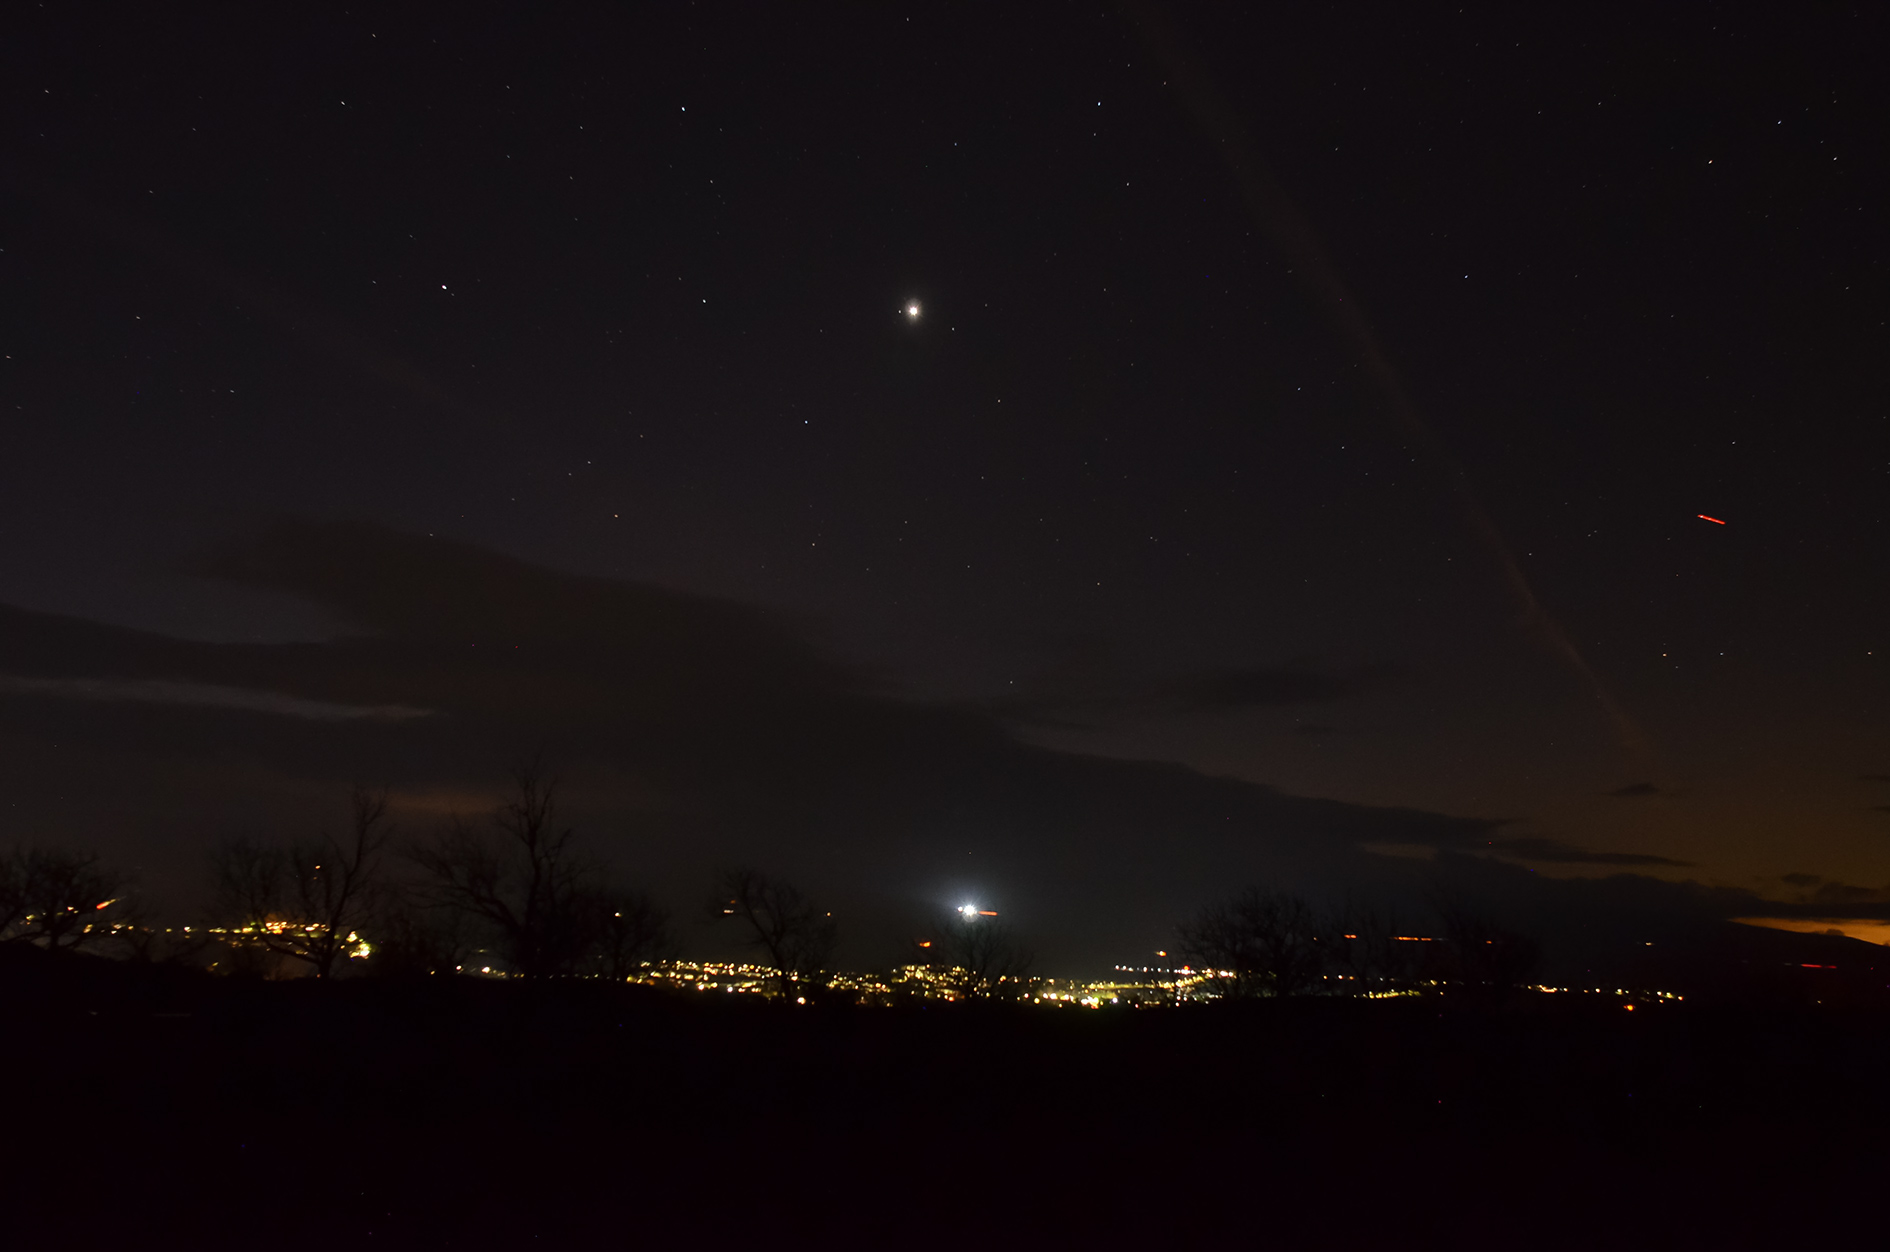 Venus rising over Kendal. 15th October 05:57 hrs. 24mm, 4 sec, f 2.8 iso 1600. Credit: Ted Woodburn